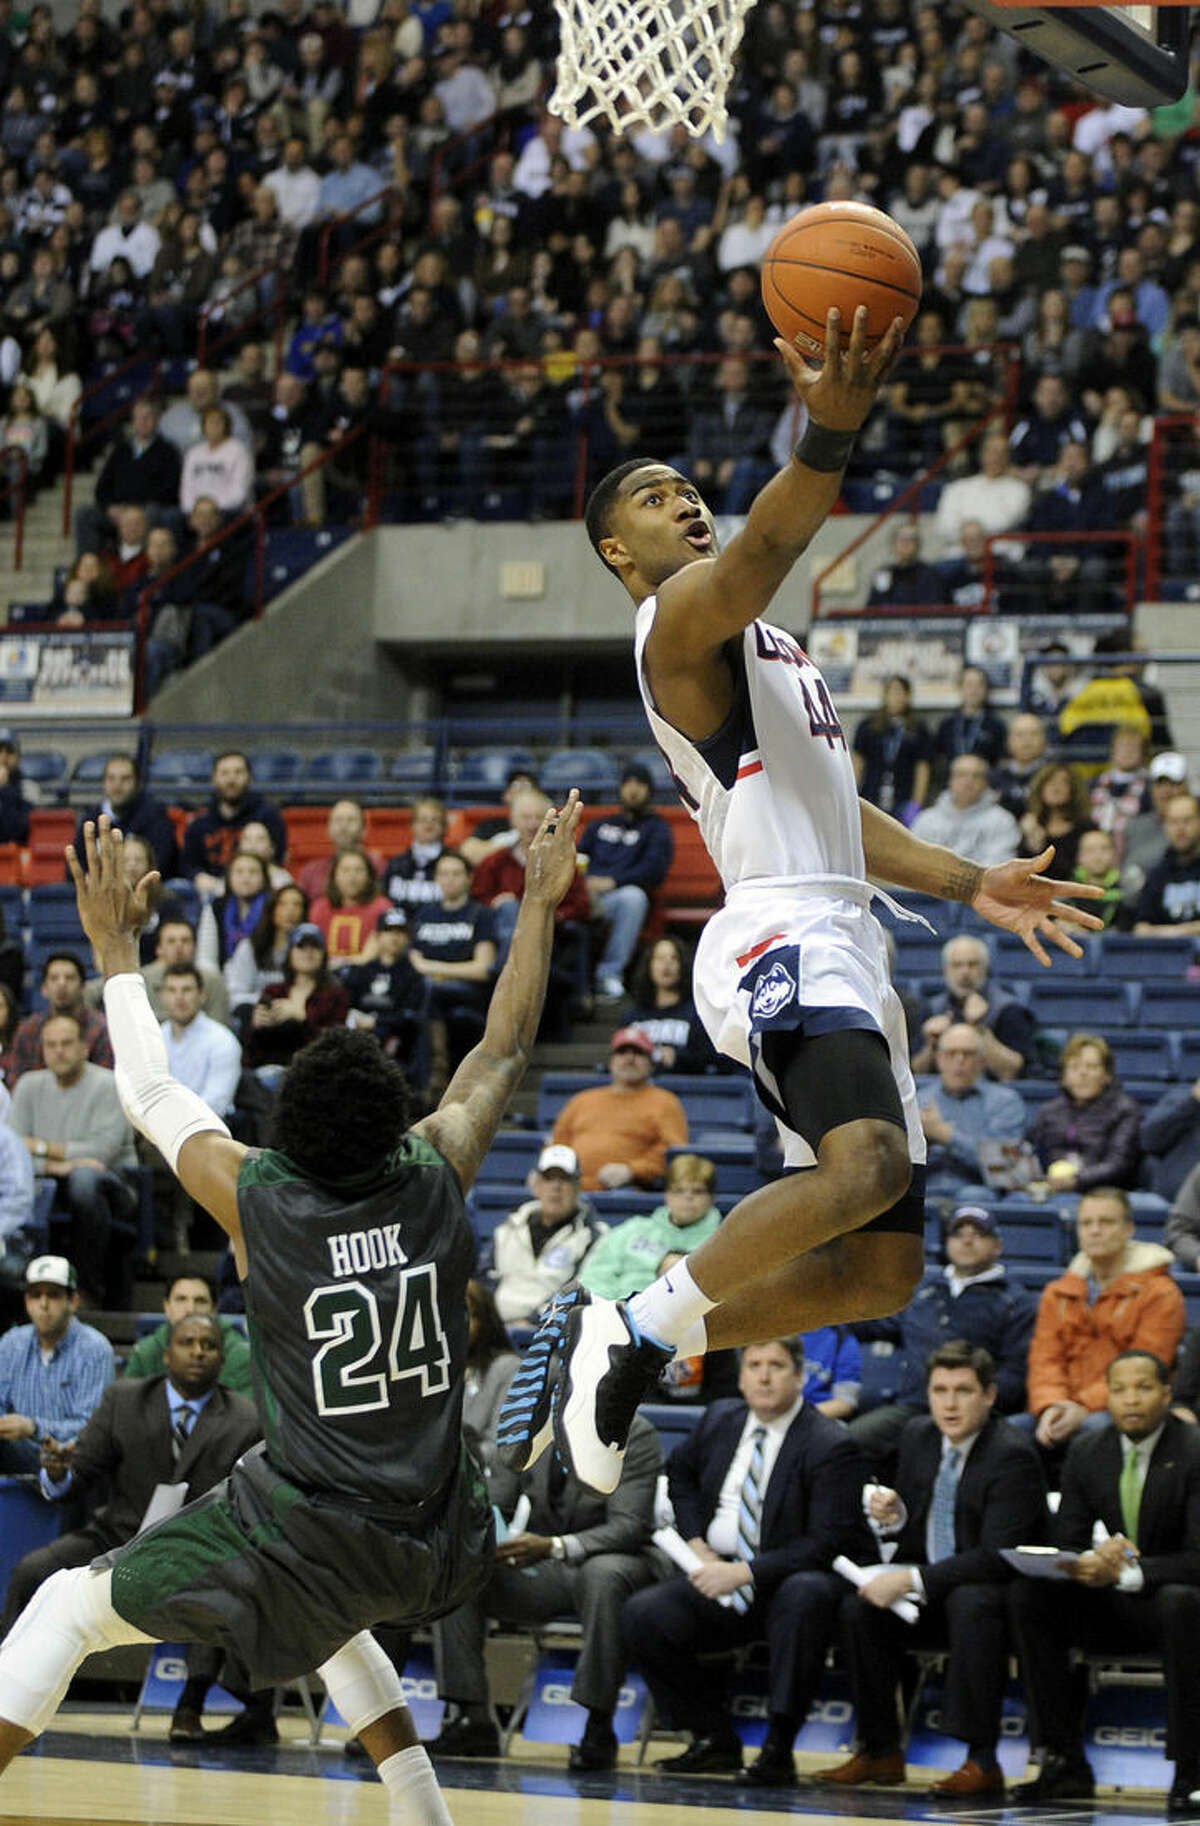 Connecticut's Rodney Purvis, right, drives past Tulane's Jay Hook (24) during the first half of an NCAA college basketball game, Sunday, Feb. 22, 2015, in Storrs, Conn. (AP Photo/Fred Beckham)